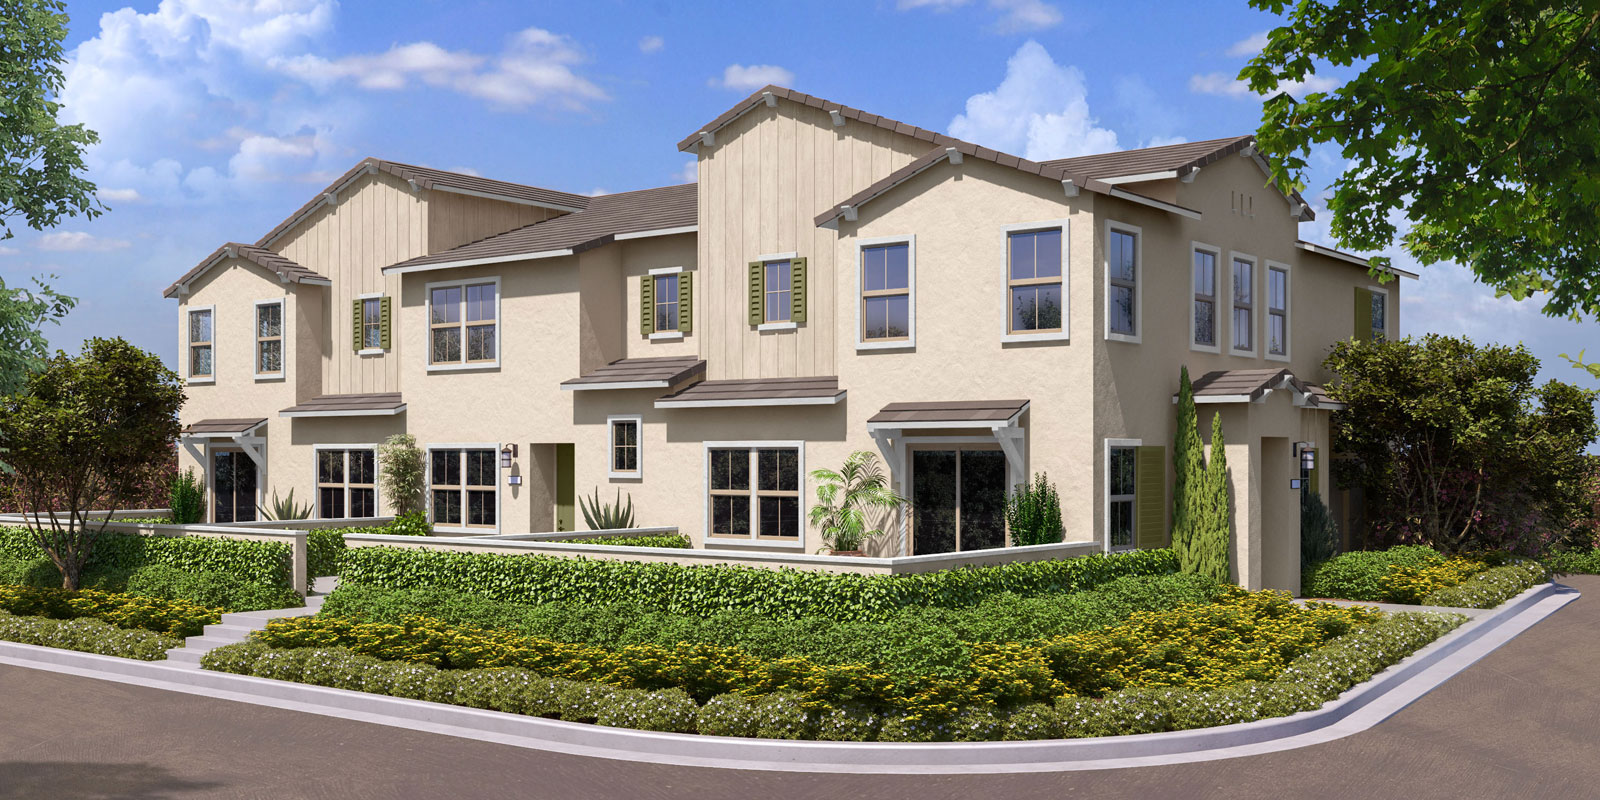 New San Diego Townhomes for Sale